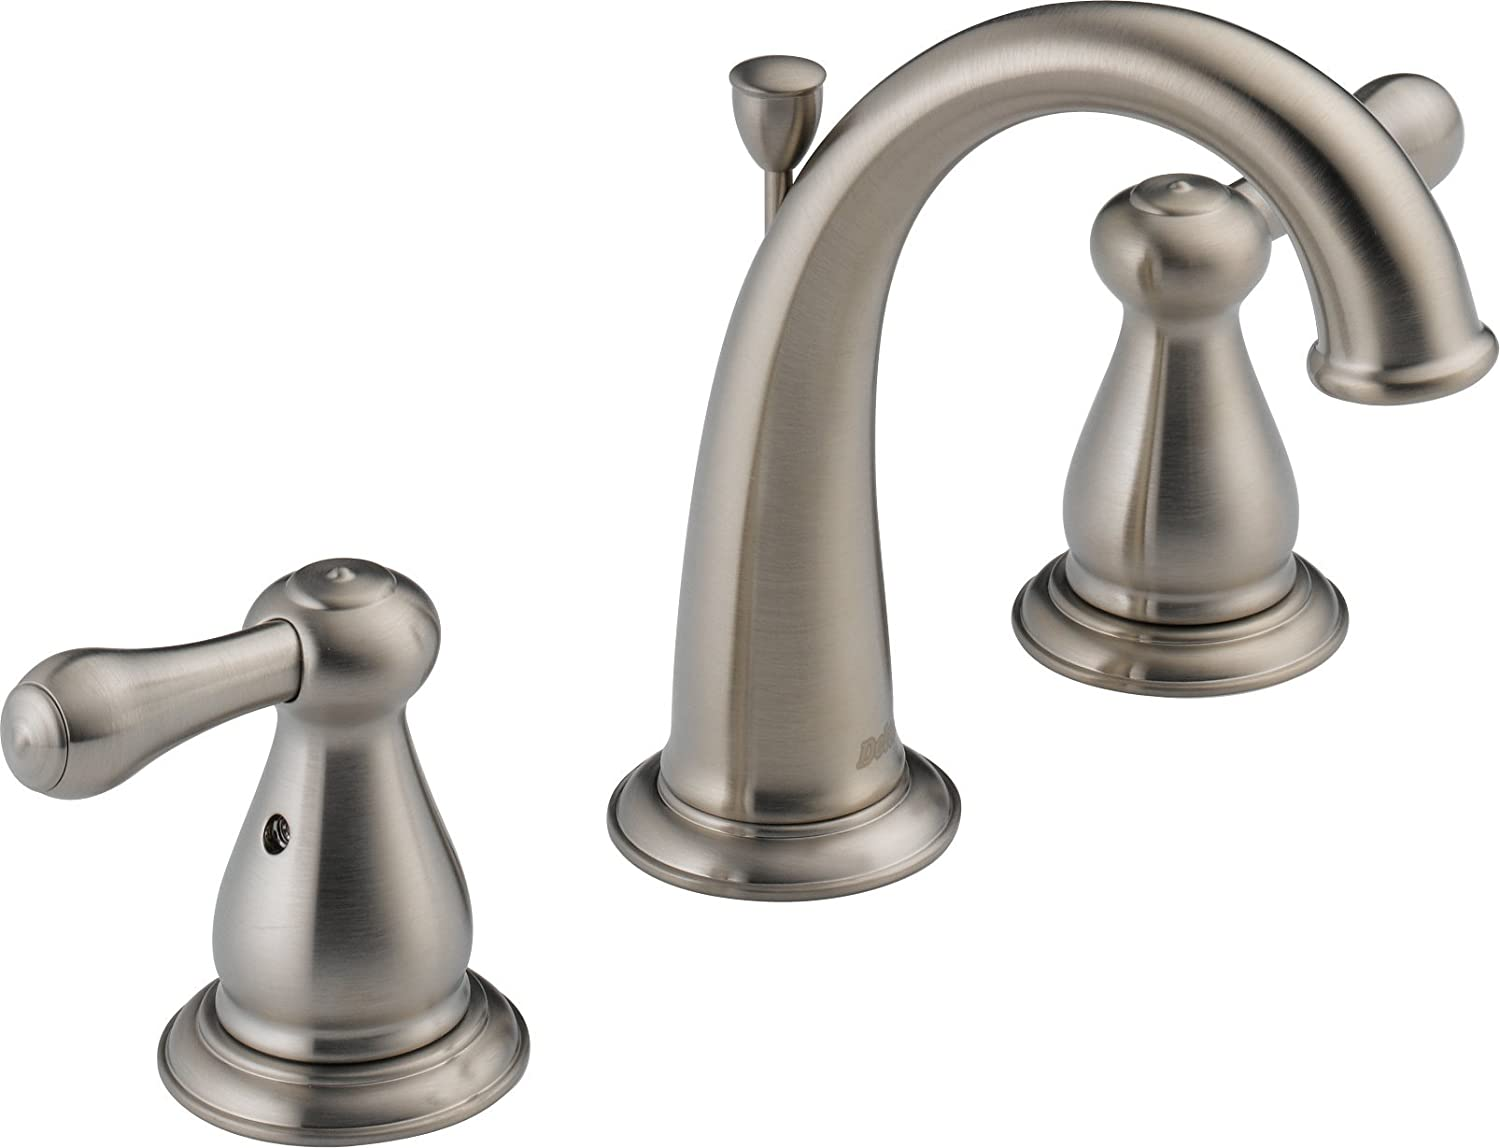 Delta 3575LF Leland Two Handle Widespread Bathroom Faucet, Chrome   Touch  On Bathroom Sink Faucets   Amazon.com